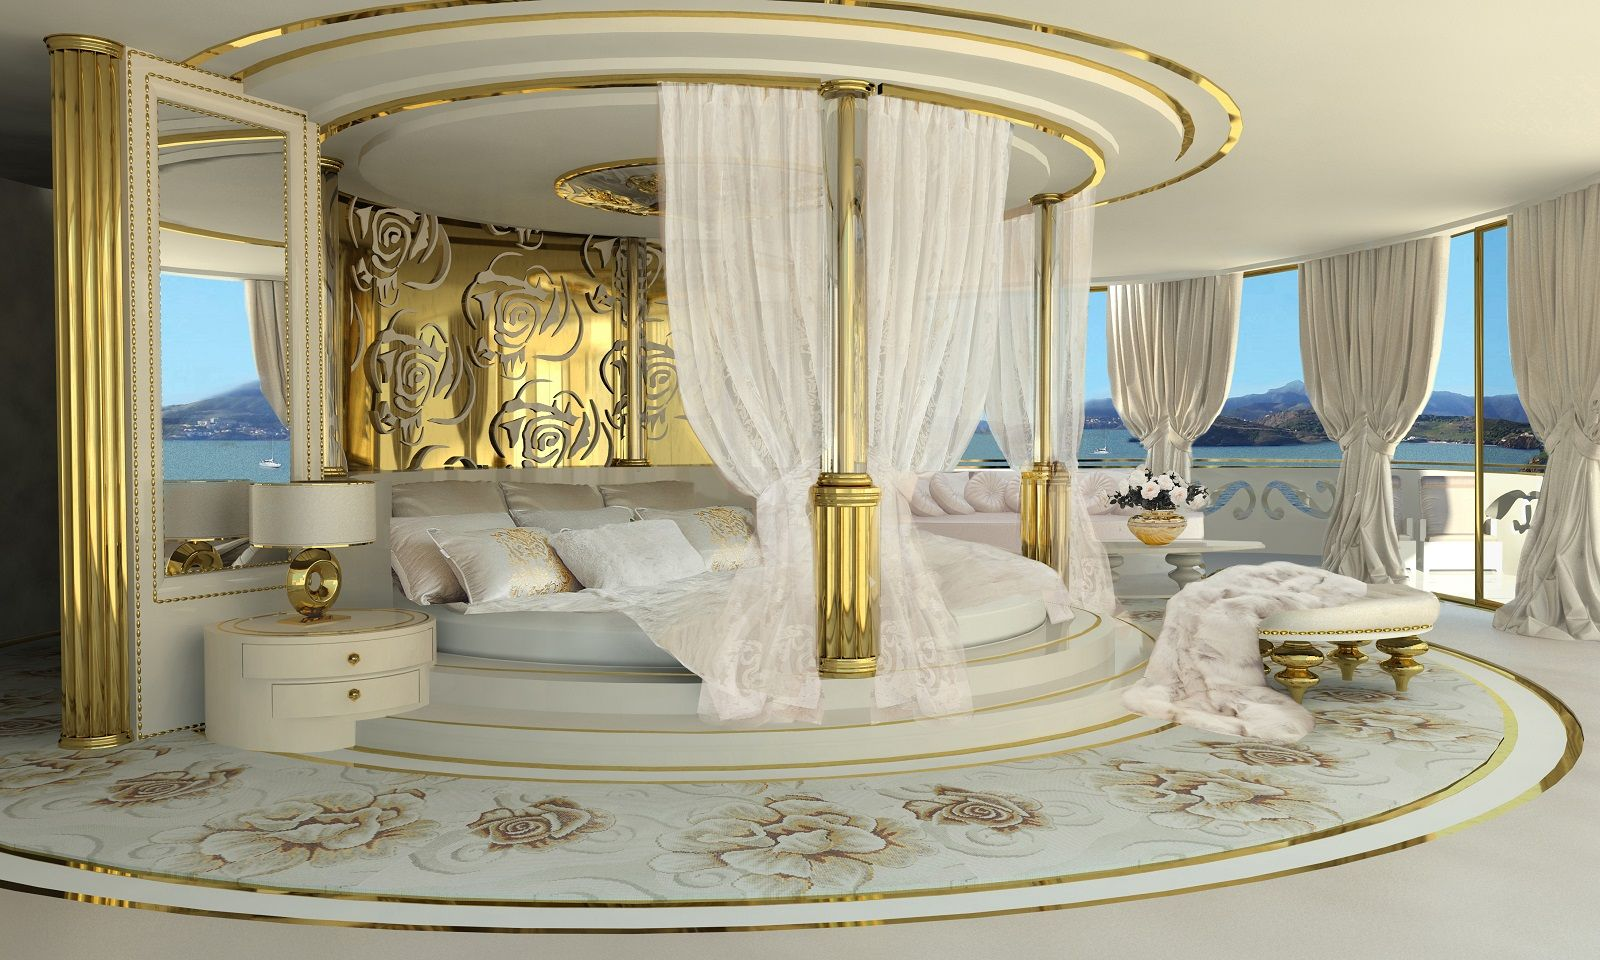 Master Bedroom King Size Bed lidia bersani / la belle - luxury mega yacht, large master bedroom